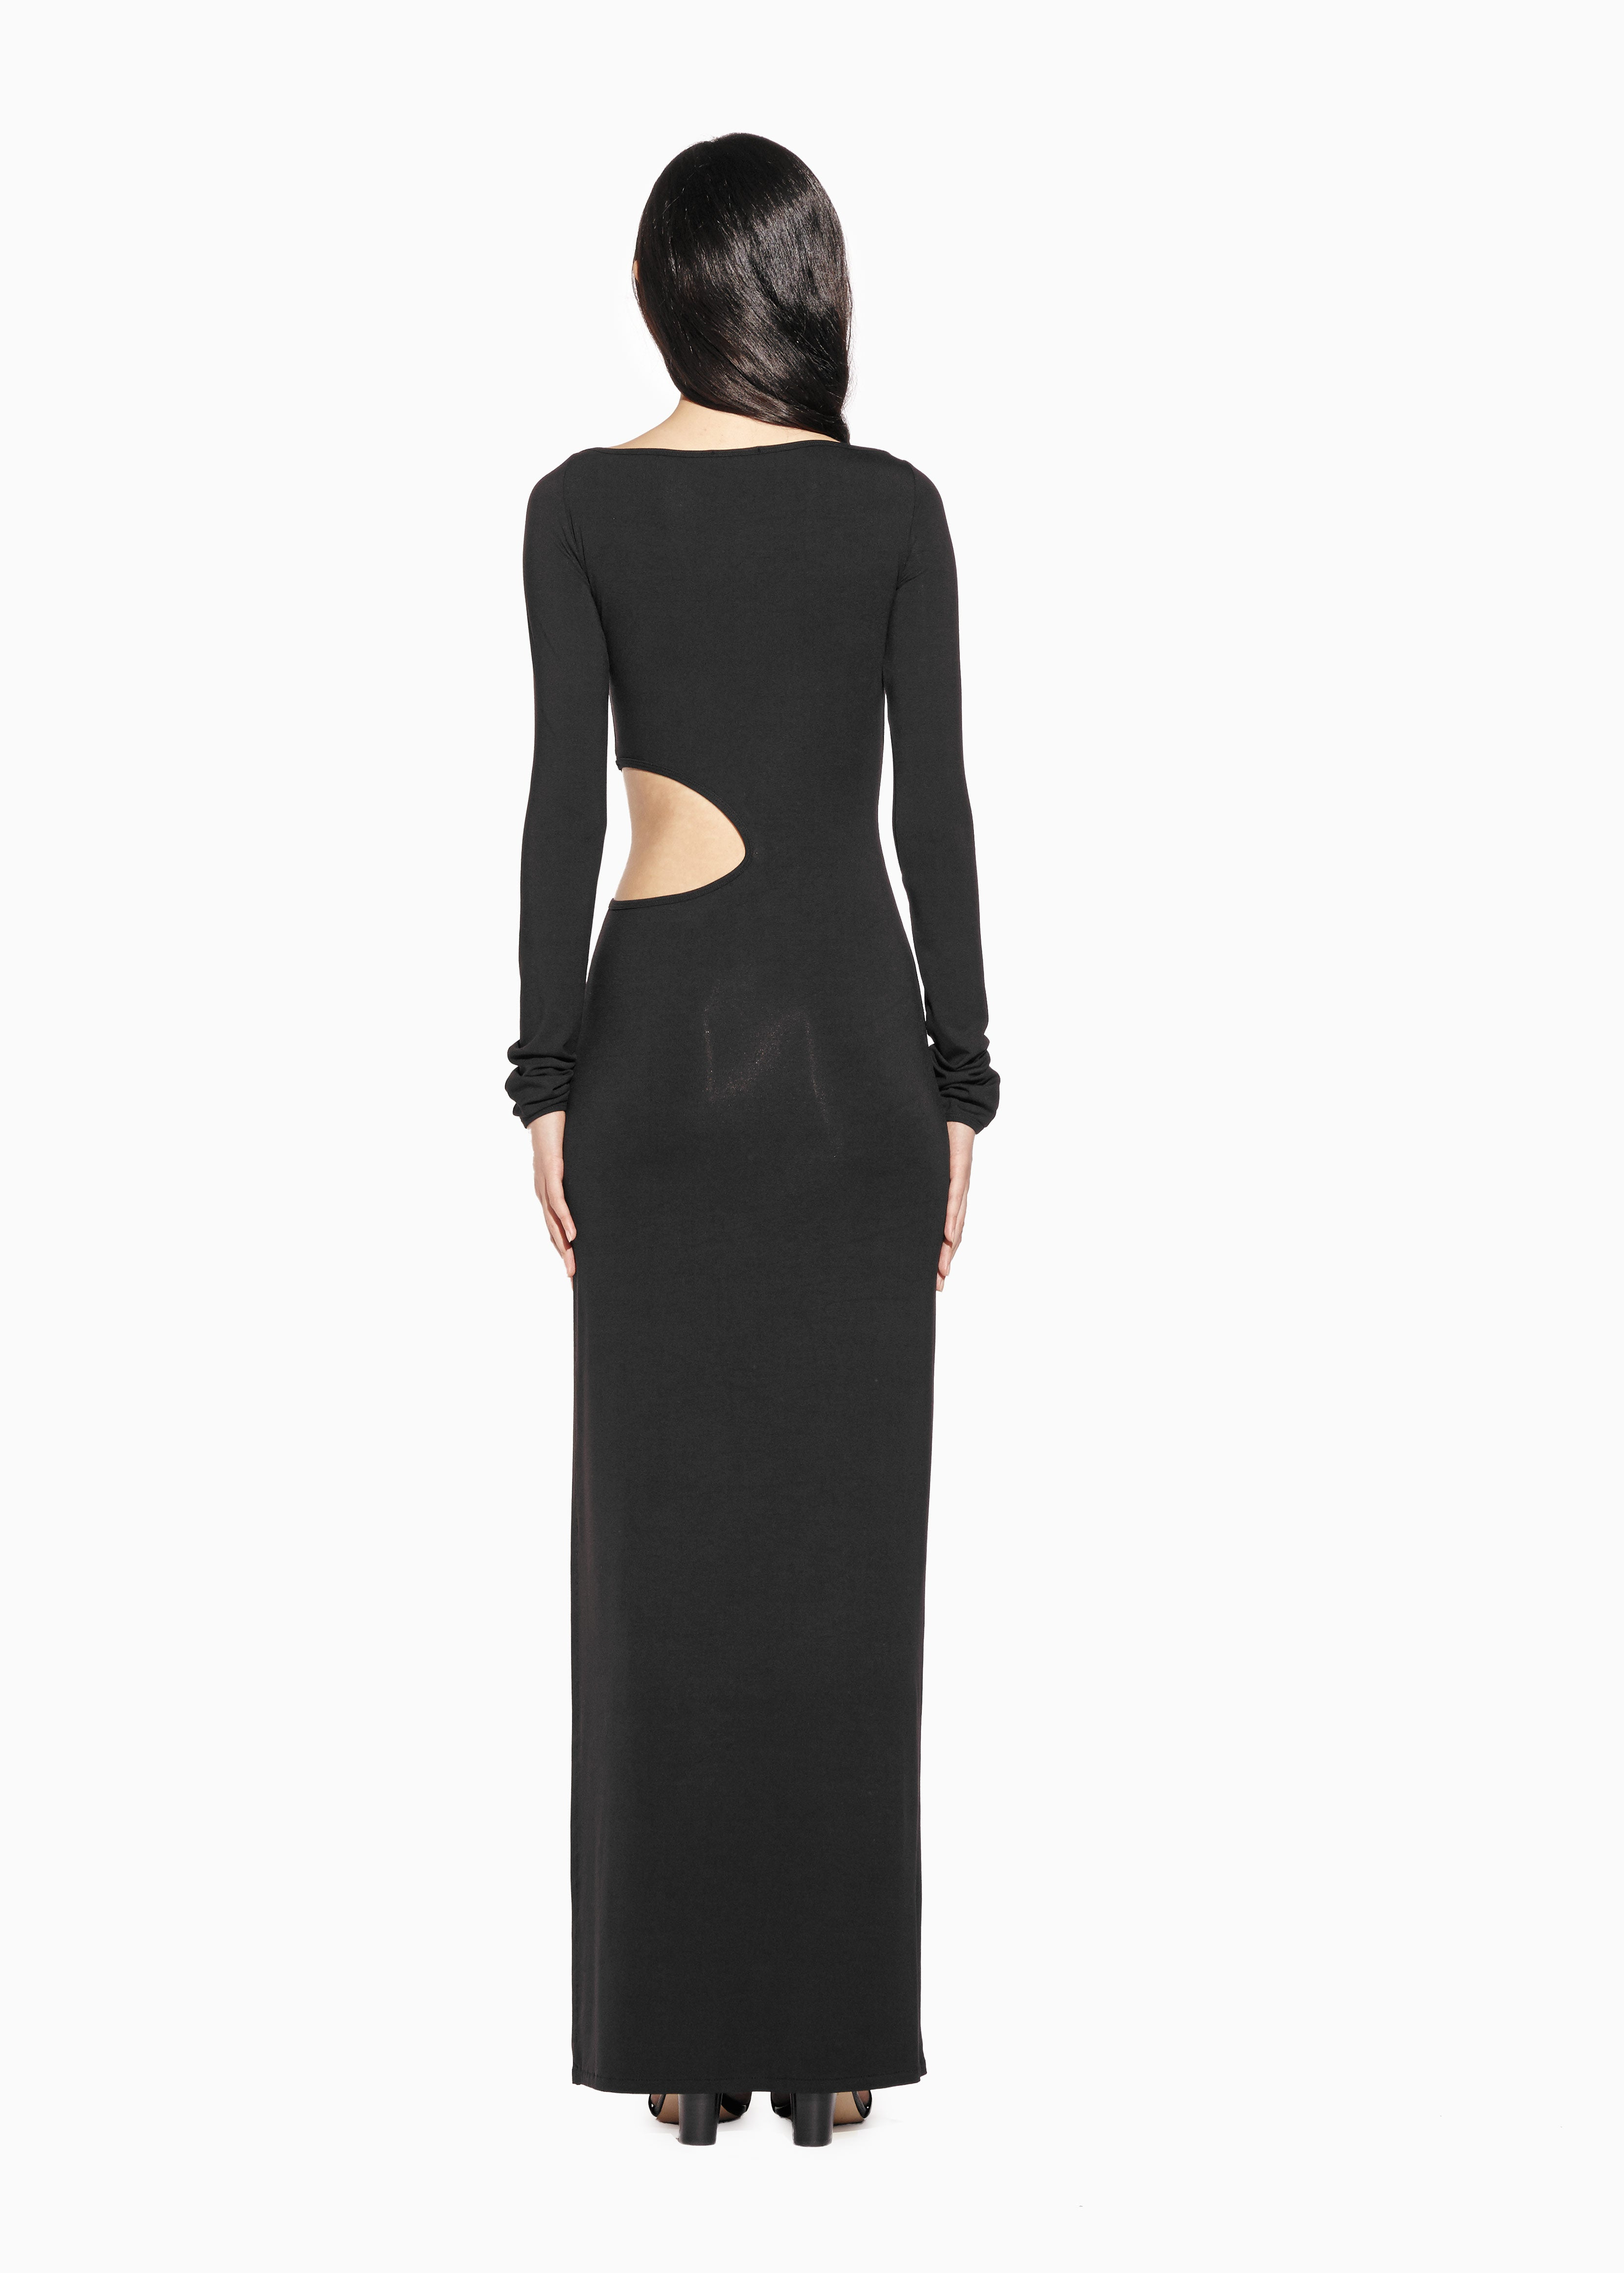 ALICE - Boat-Neck, Viscose Jersey Long Dress with Slit and cut out at the waist.